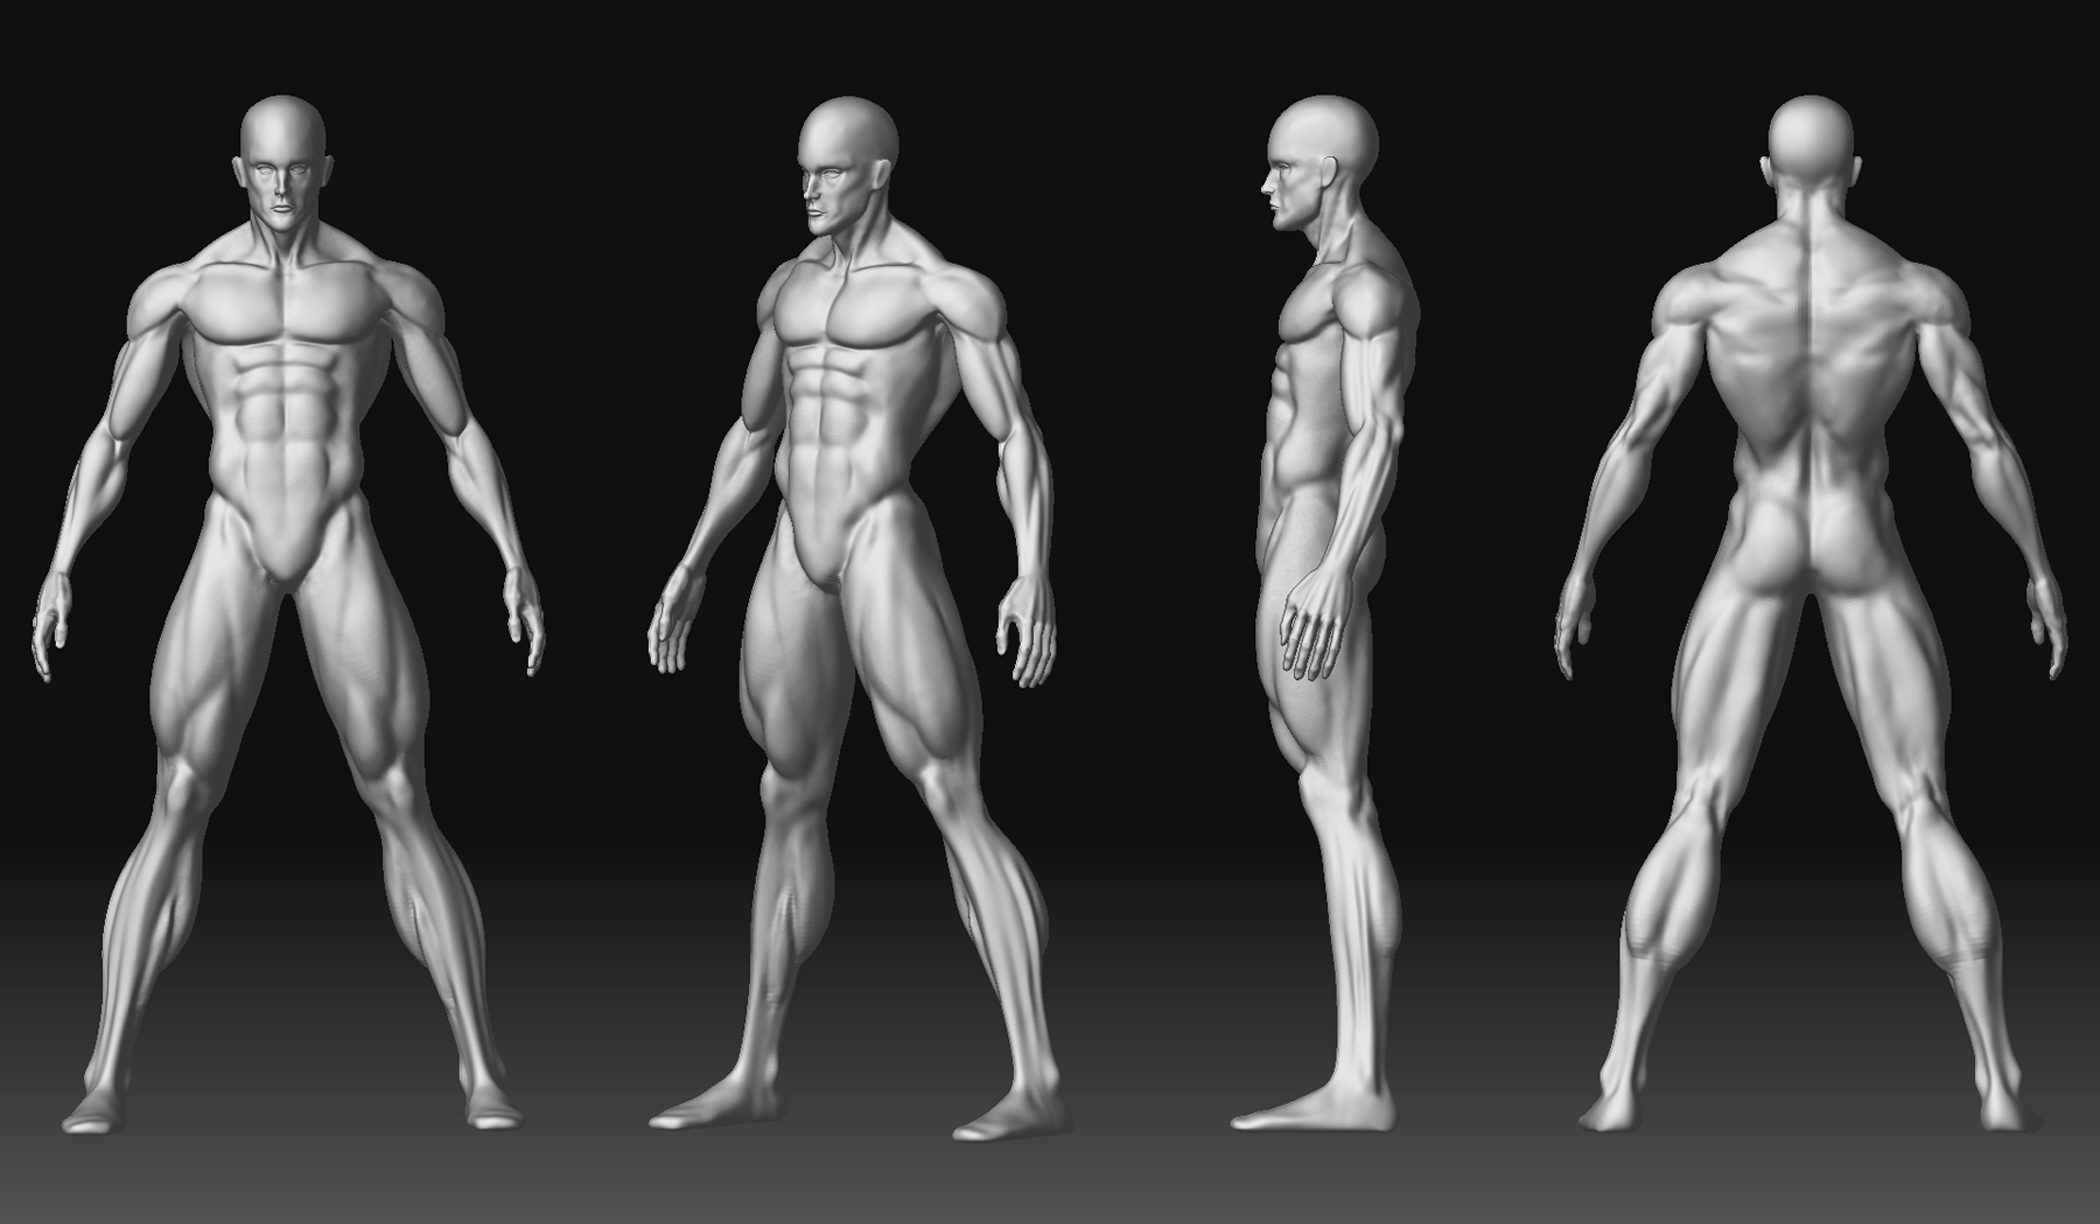 Somewhat New To Zbrush